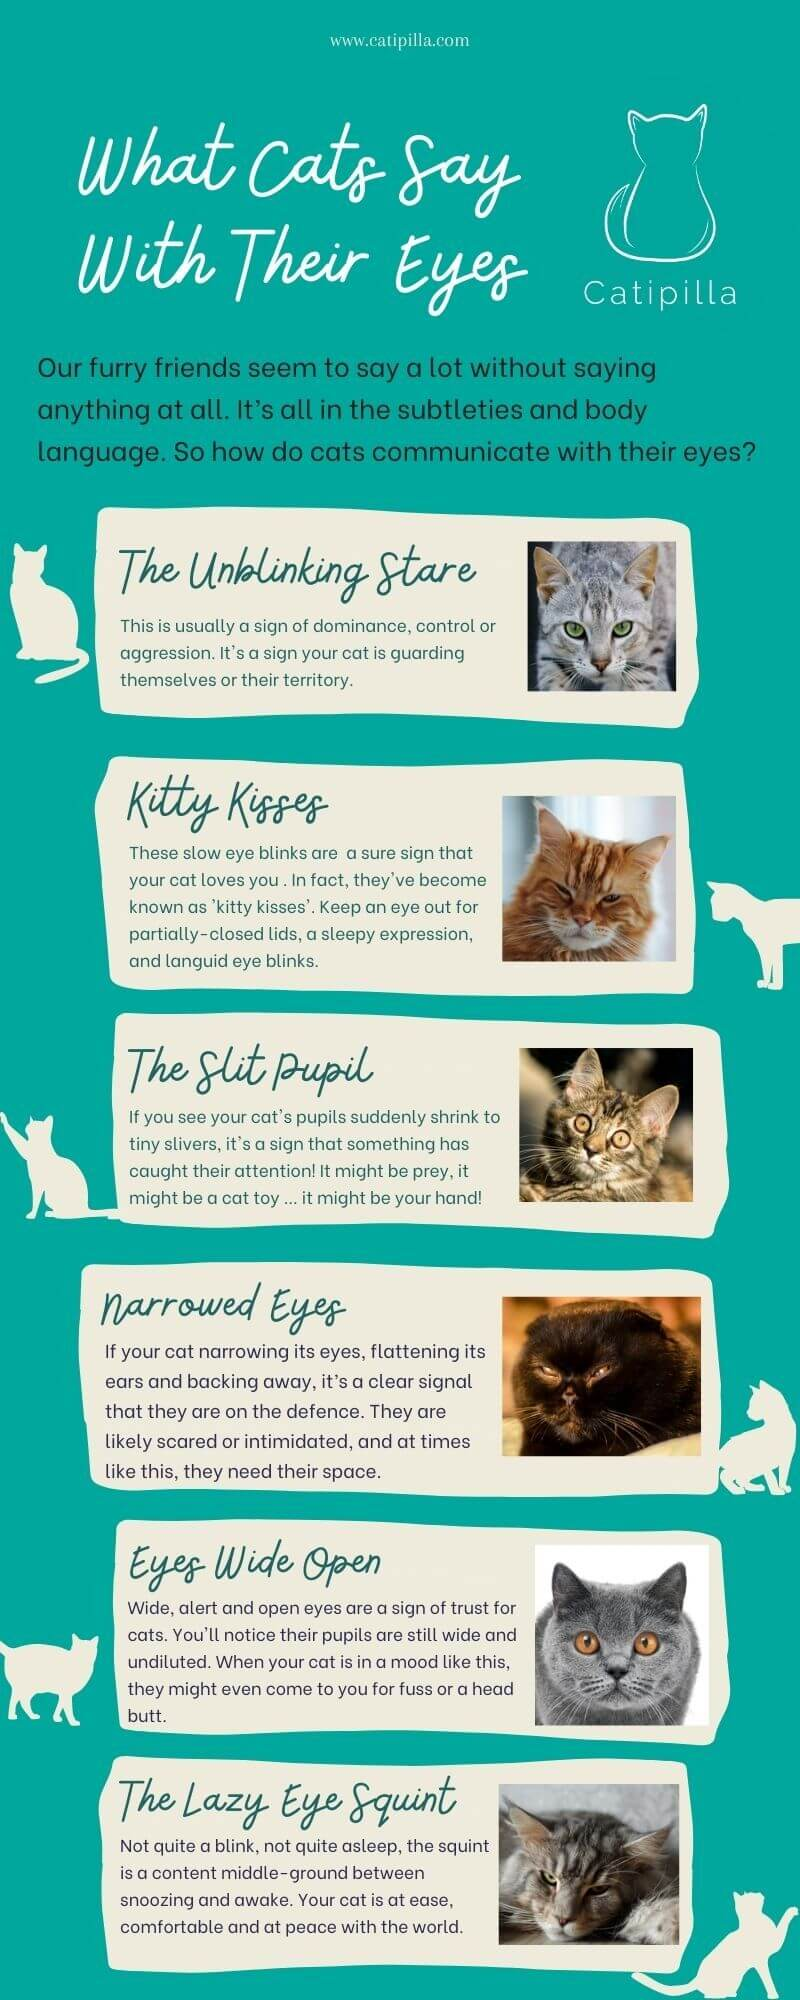 What Cats Say With Their Eyes